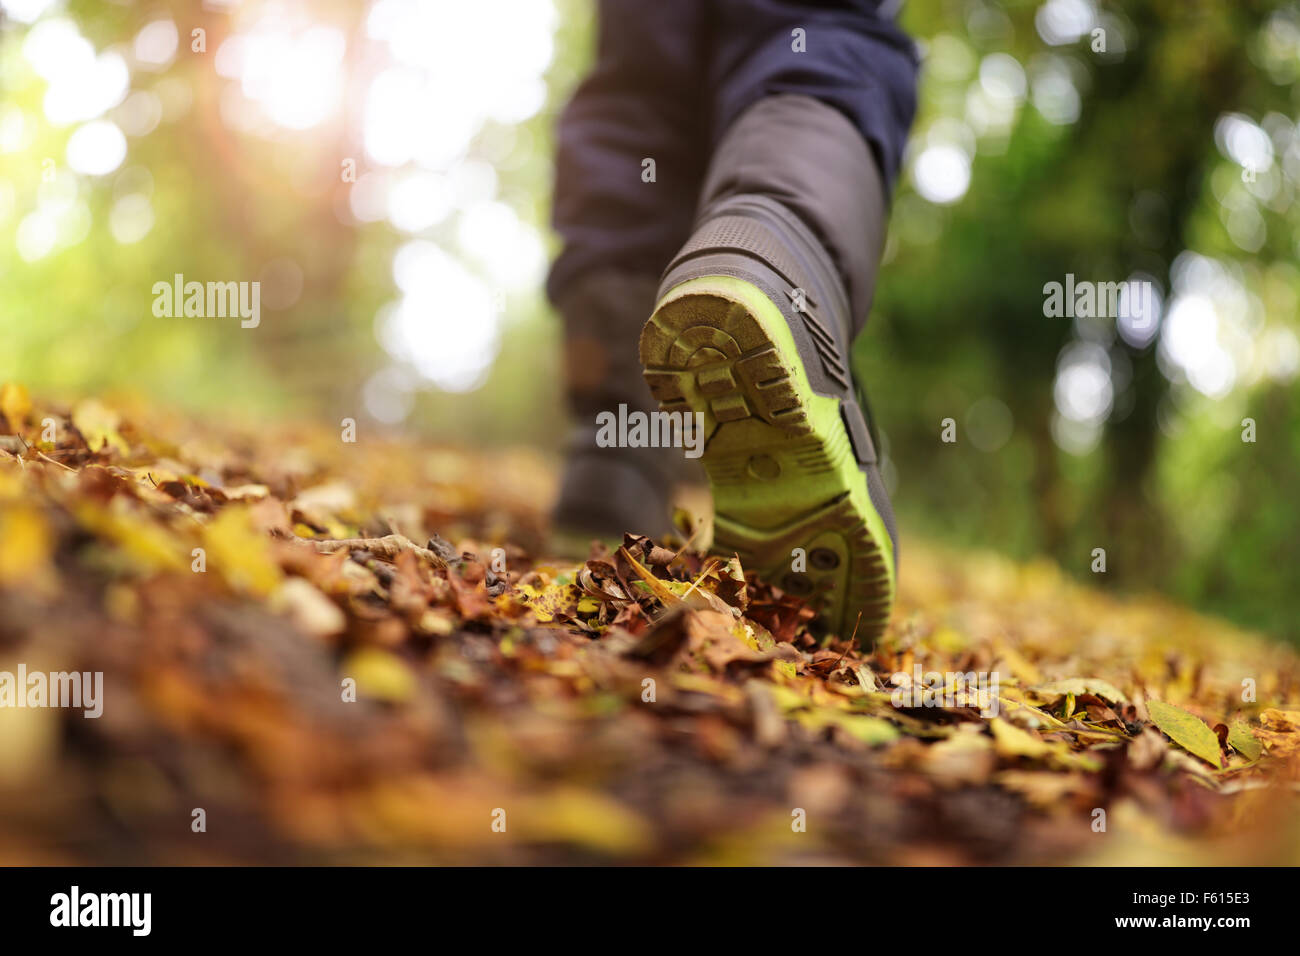 Walking in autumn and winter - Stock Image